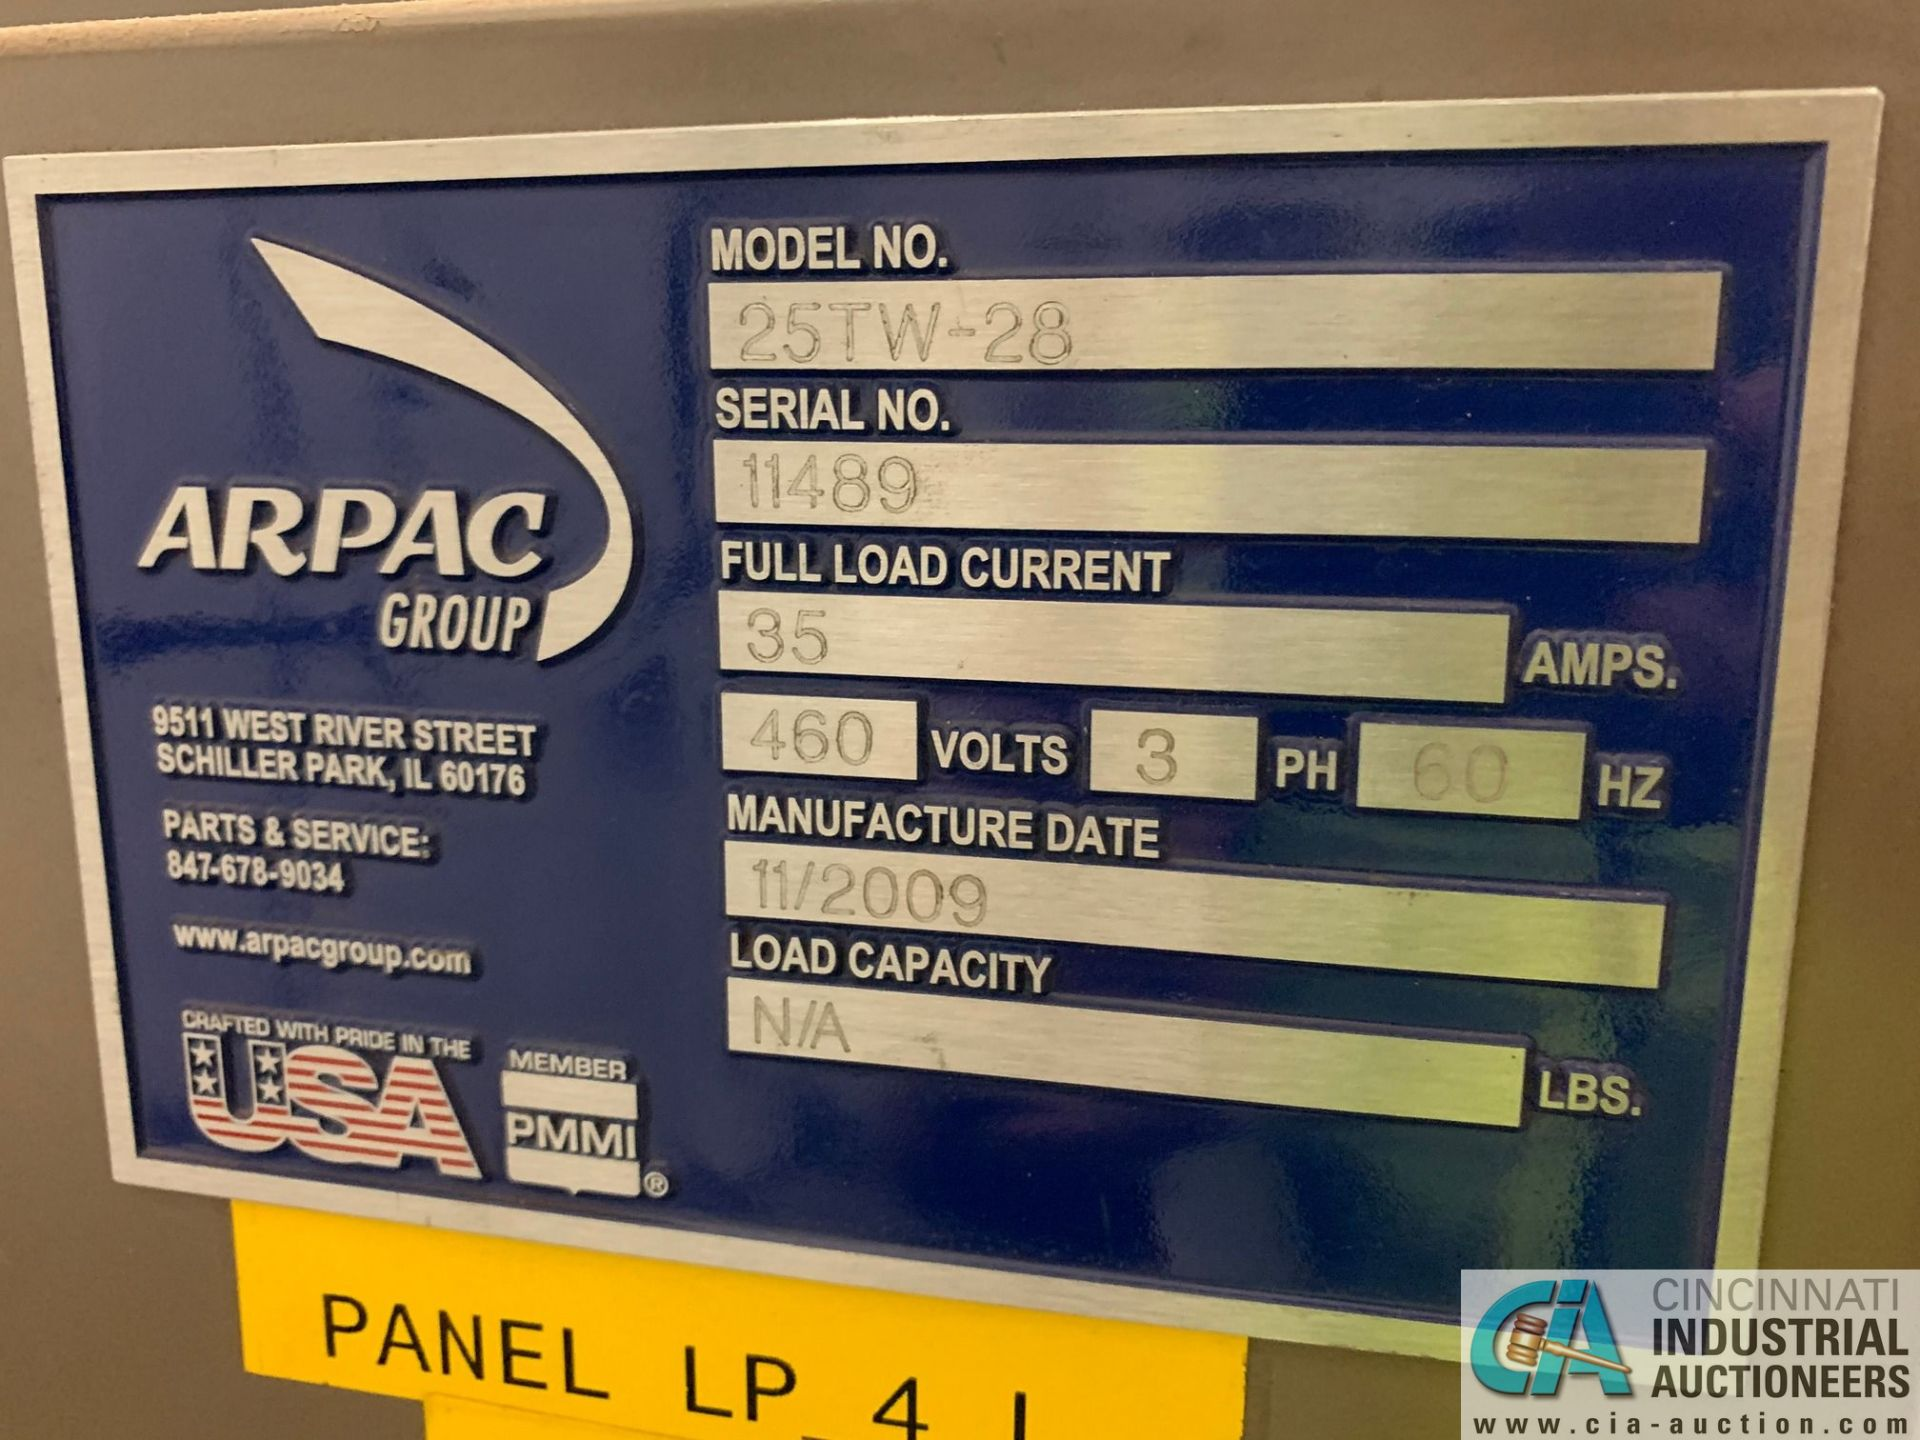 "ARPAC MODEL 25TW-28 SHRINK WRAPPER / HEAT TUNNEL; S/N 11489, HEIGHT RANGE: 4"" - 12"", LENGTH (FLOW - Image 5 of 19"